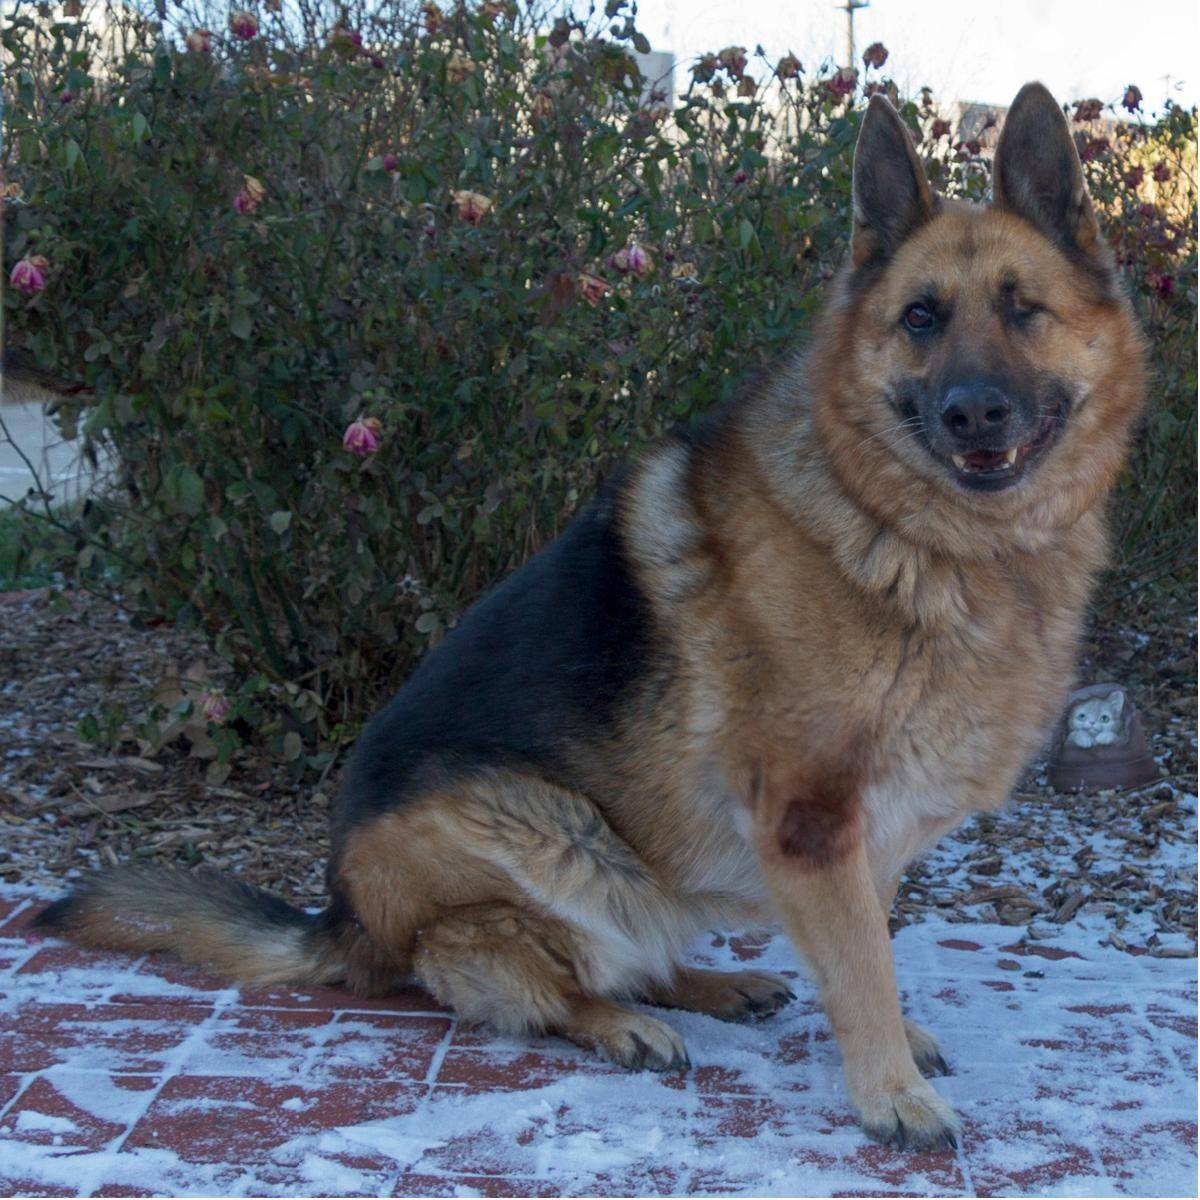 Reyna, is a 6-year-old, female shepherd, who weighs about 80 pounds. She is in foster care, so please call ahead to make arrangements to meet her.